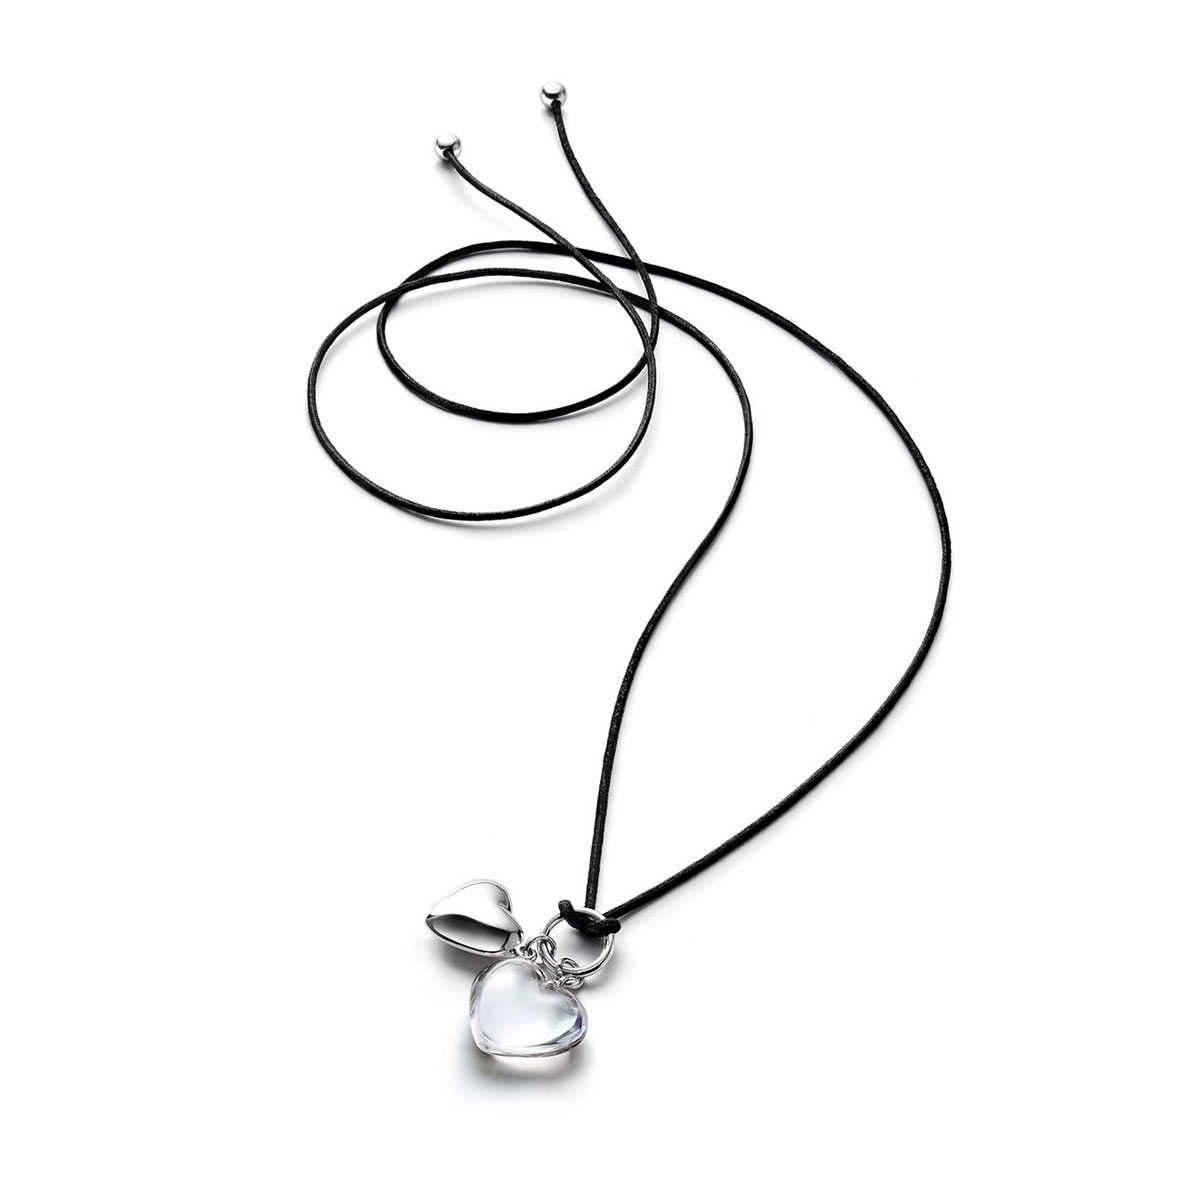 Baccarat Crystal Romance Pendant Necklace Silver And Clear Crystal